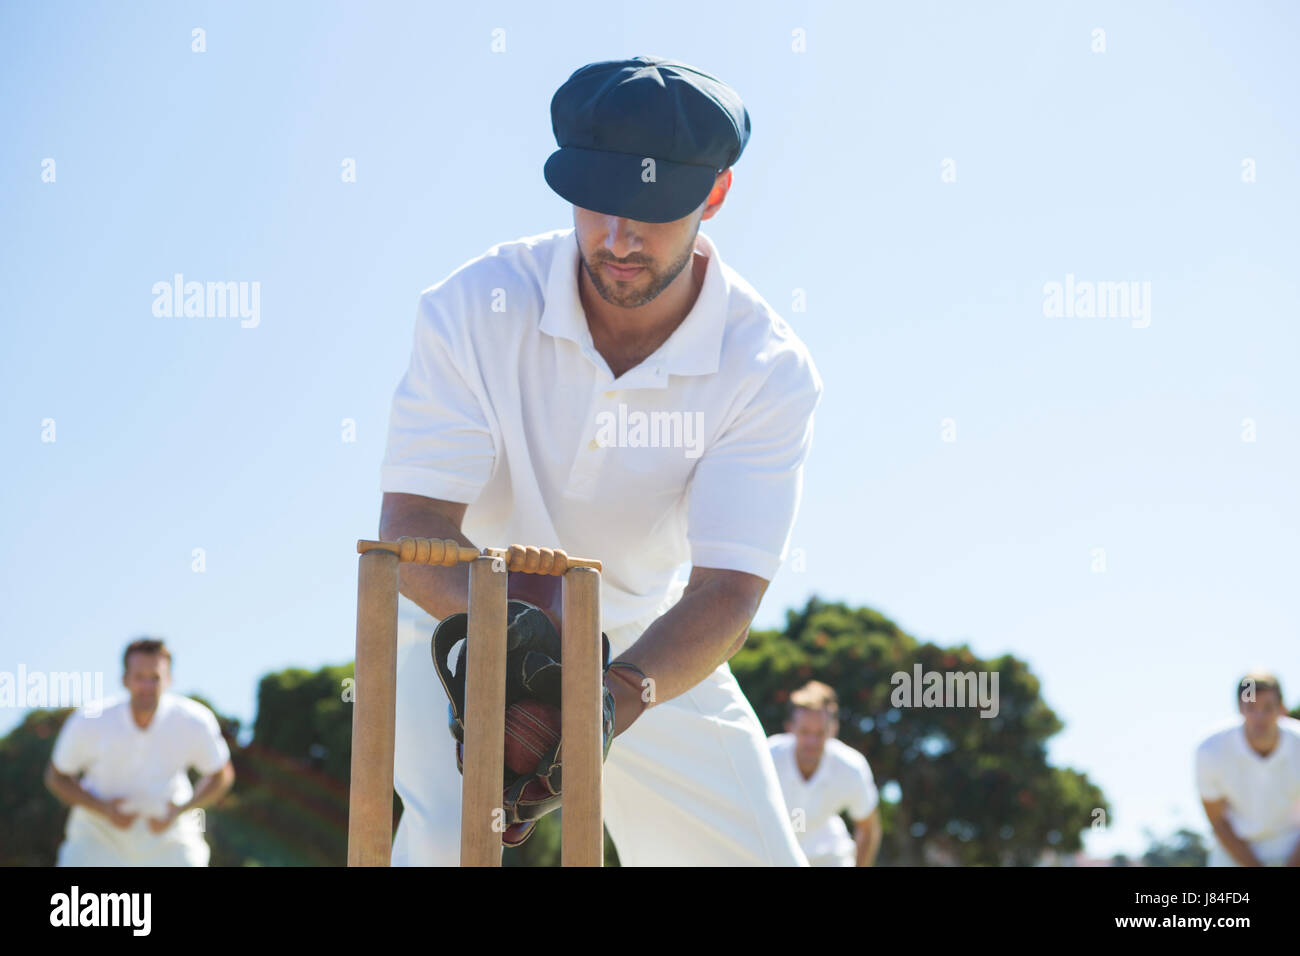 Close up of wicket keeper standing by stumps against clear sky - Stock Image